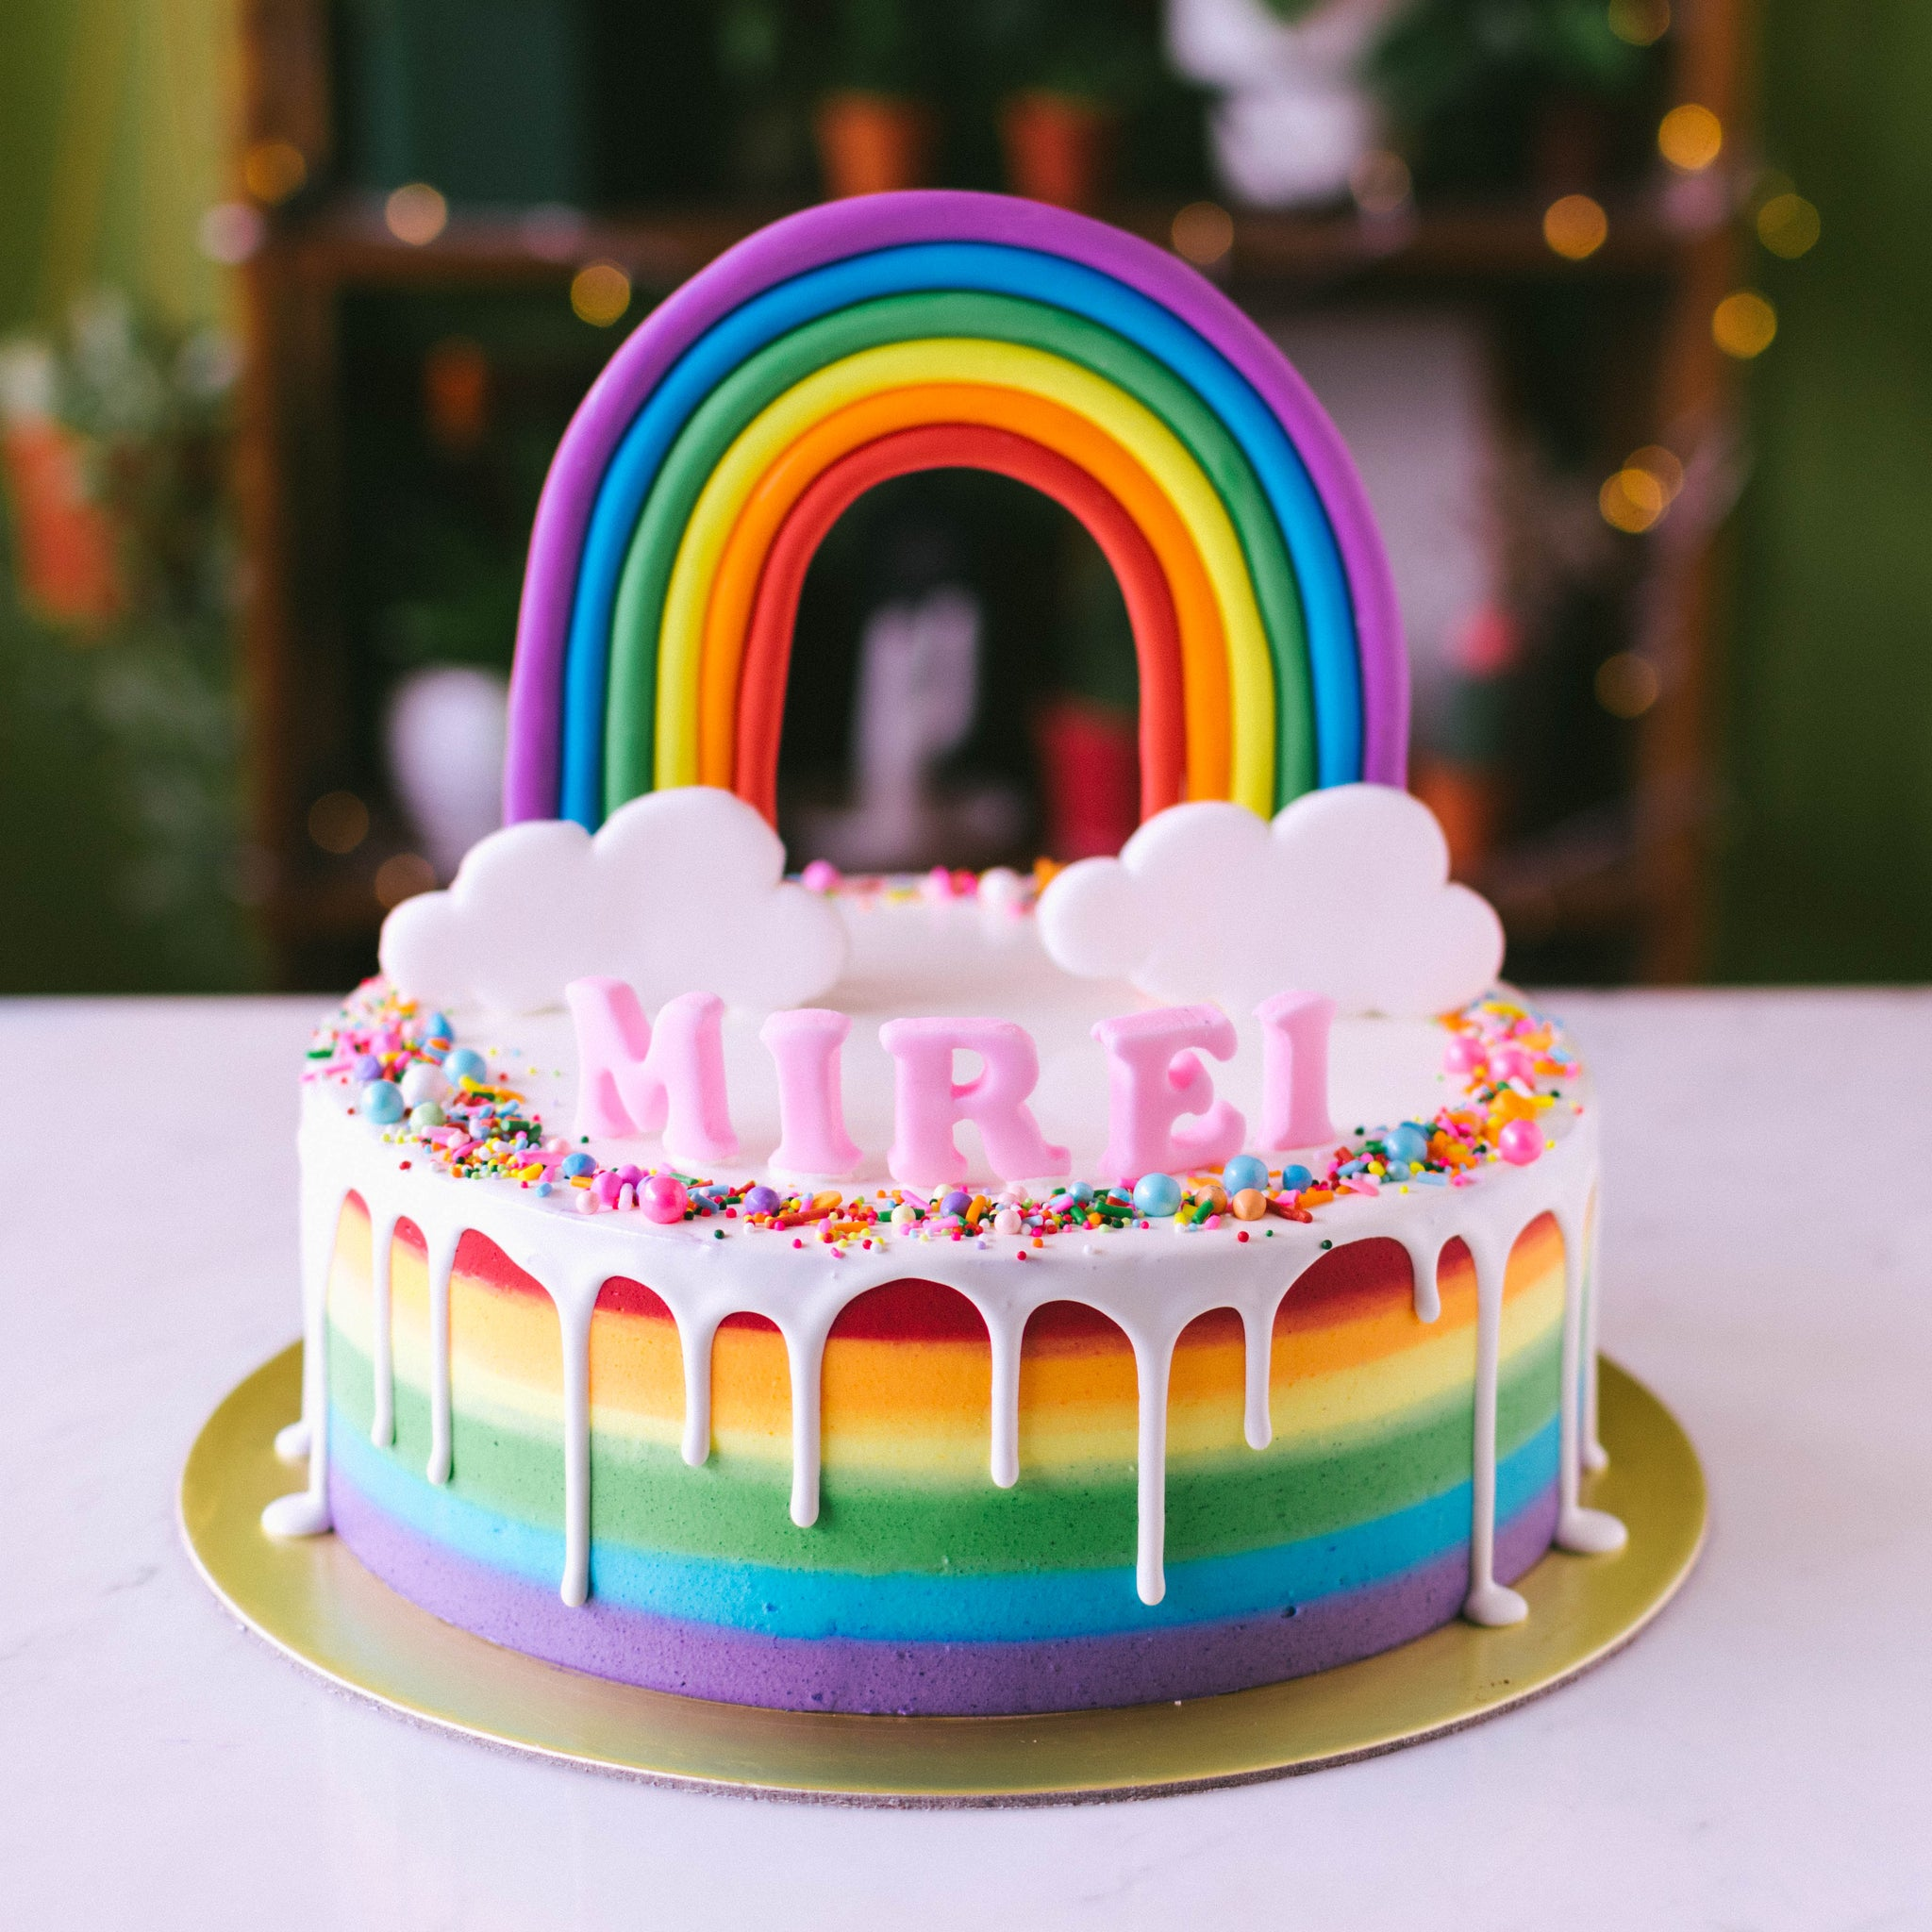 Rainbow Overload - Custom Bakes by Edith Patisserie